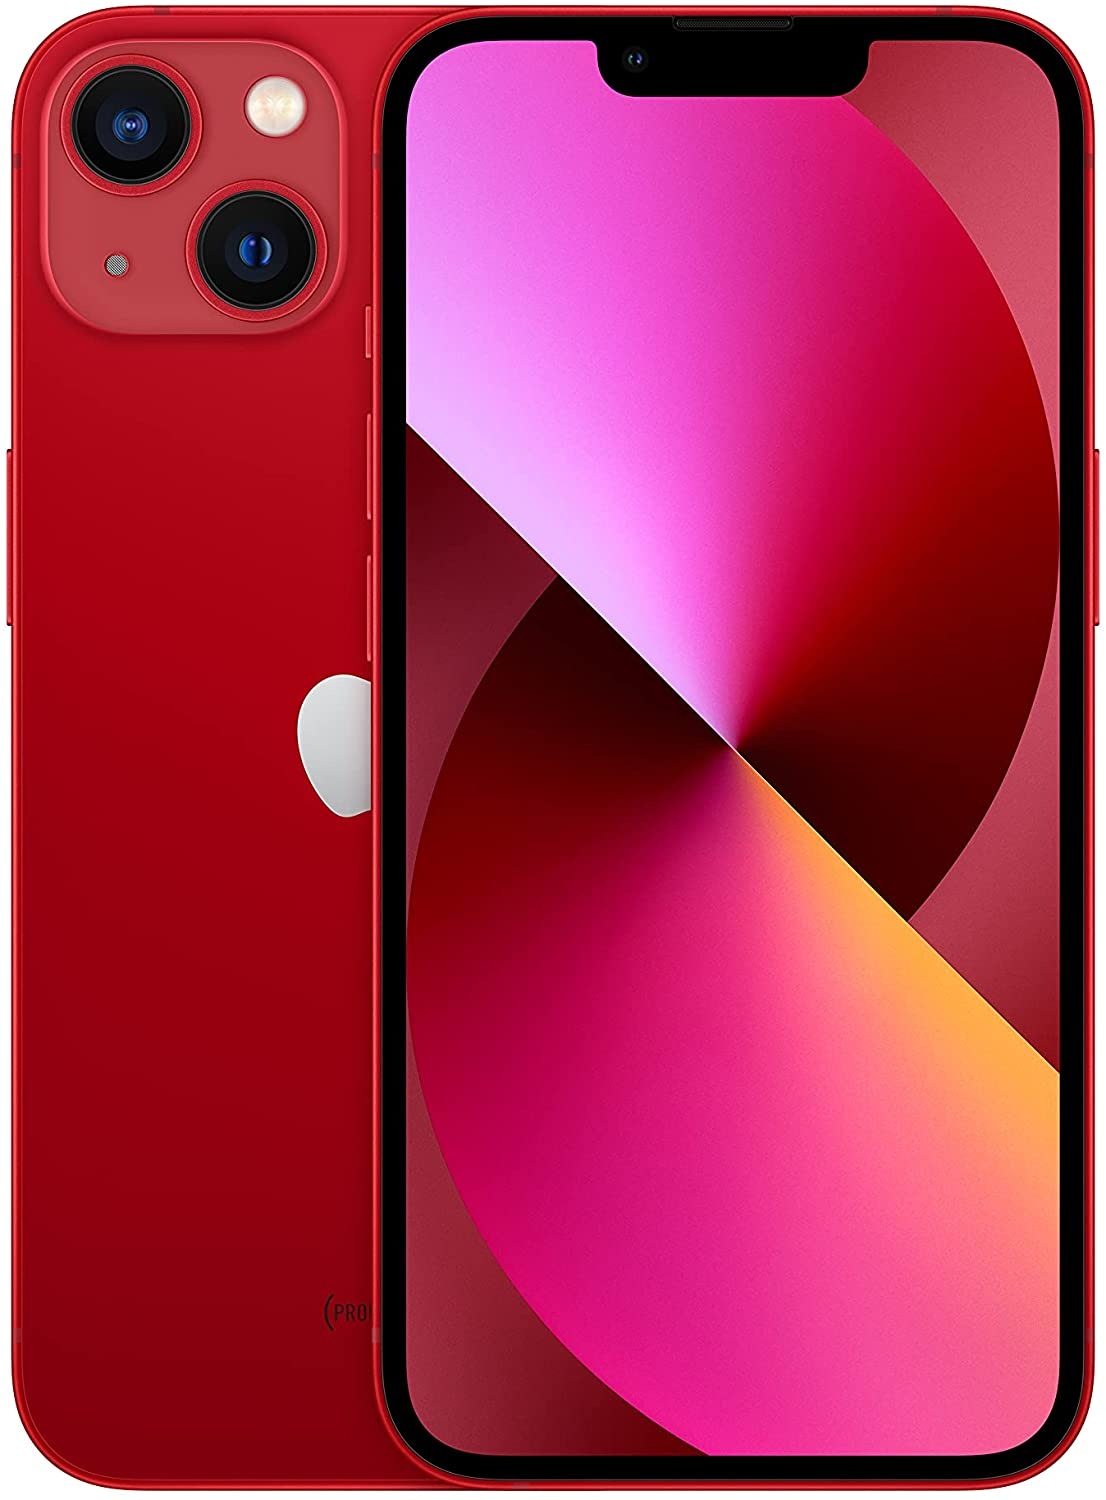 New Apple iPhone 13 with FaceTime (256GB) USA Version - (PRODUCT) RED